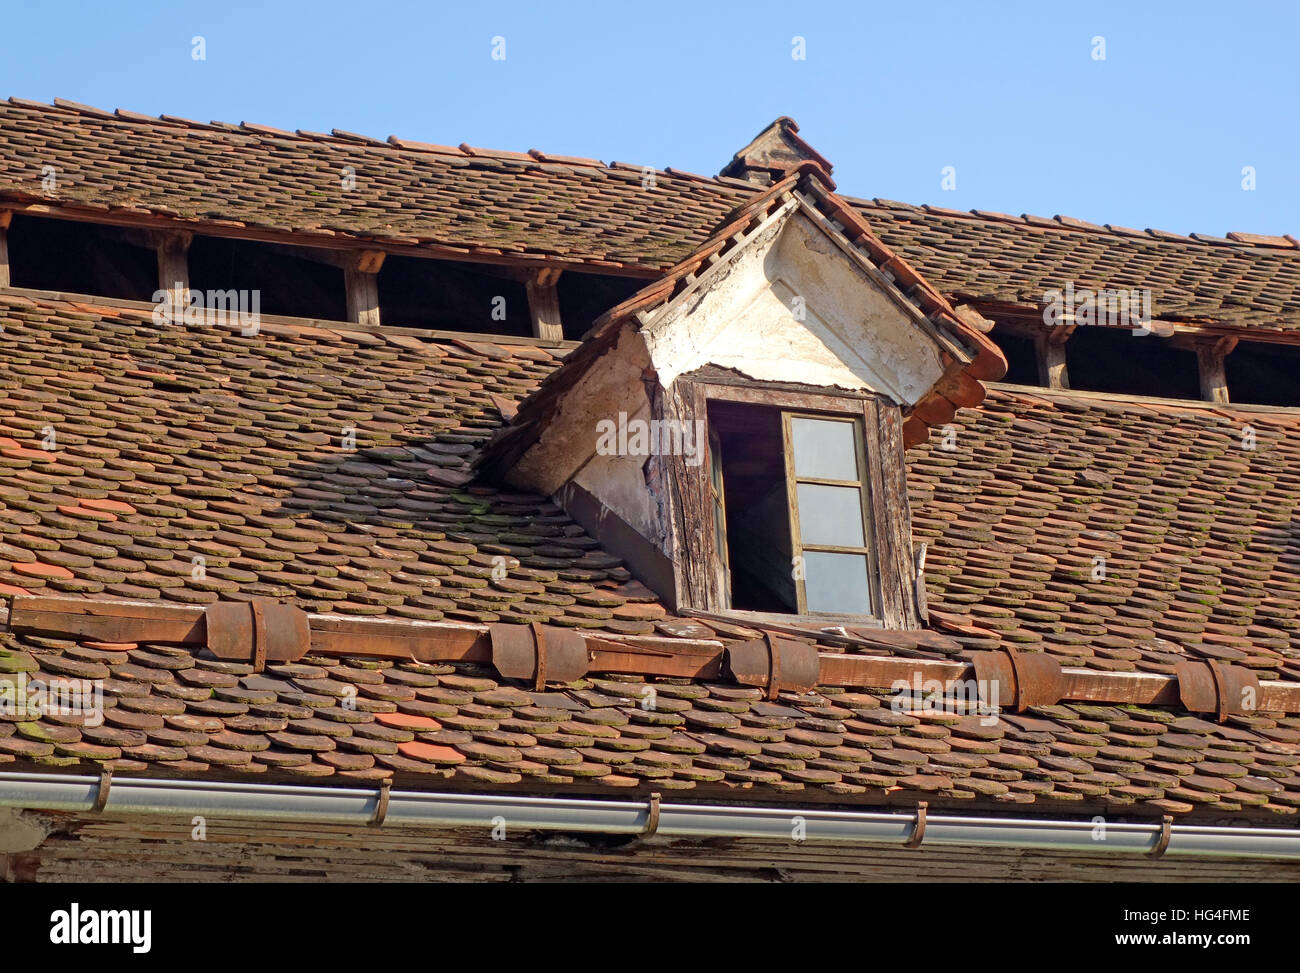 Medieval roof construction with window and openings for attic ventilation and snow guards - Stock Image